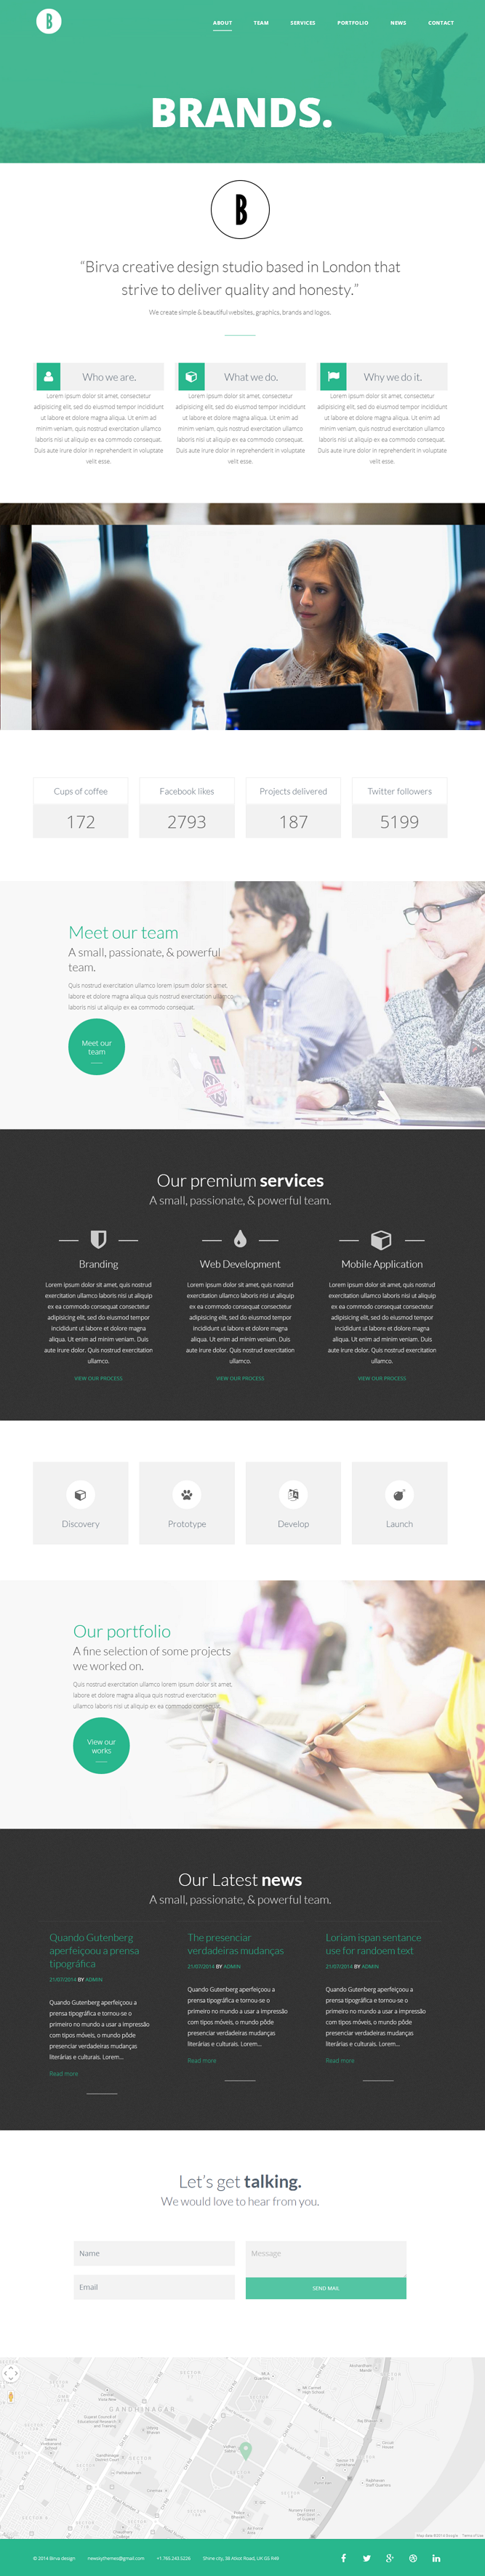 BIRVA One Page WordPress Theme is a vibrant, responsive one page parallax theme built on the Boo ...